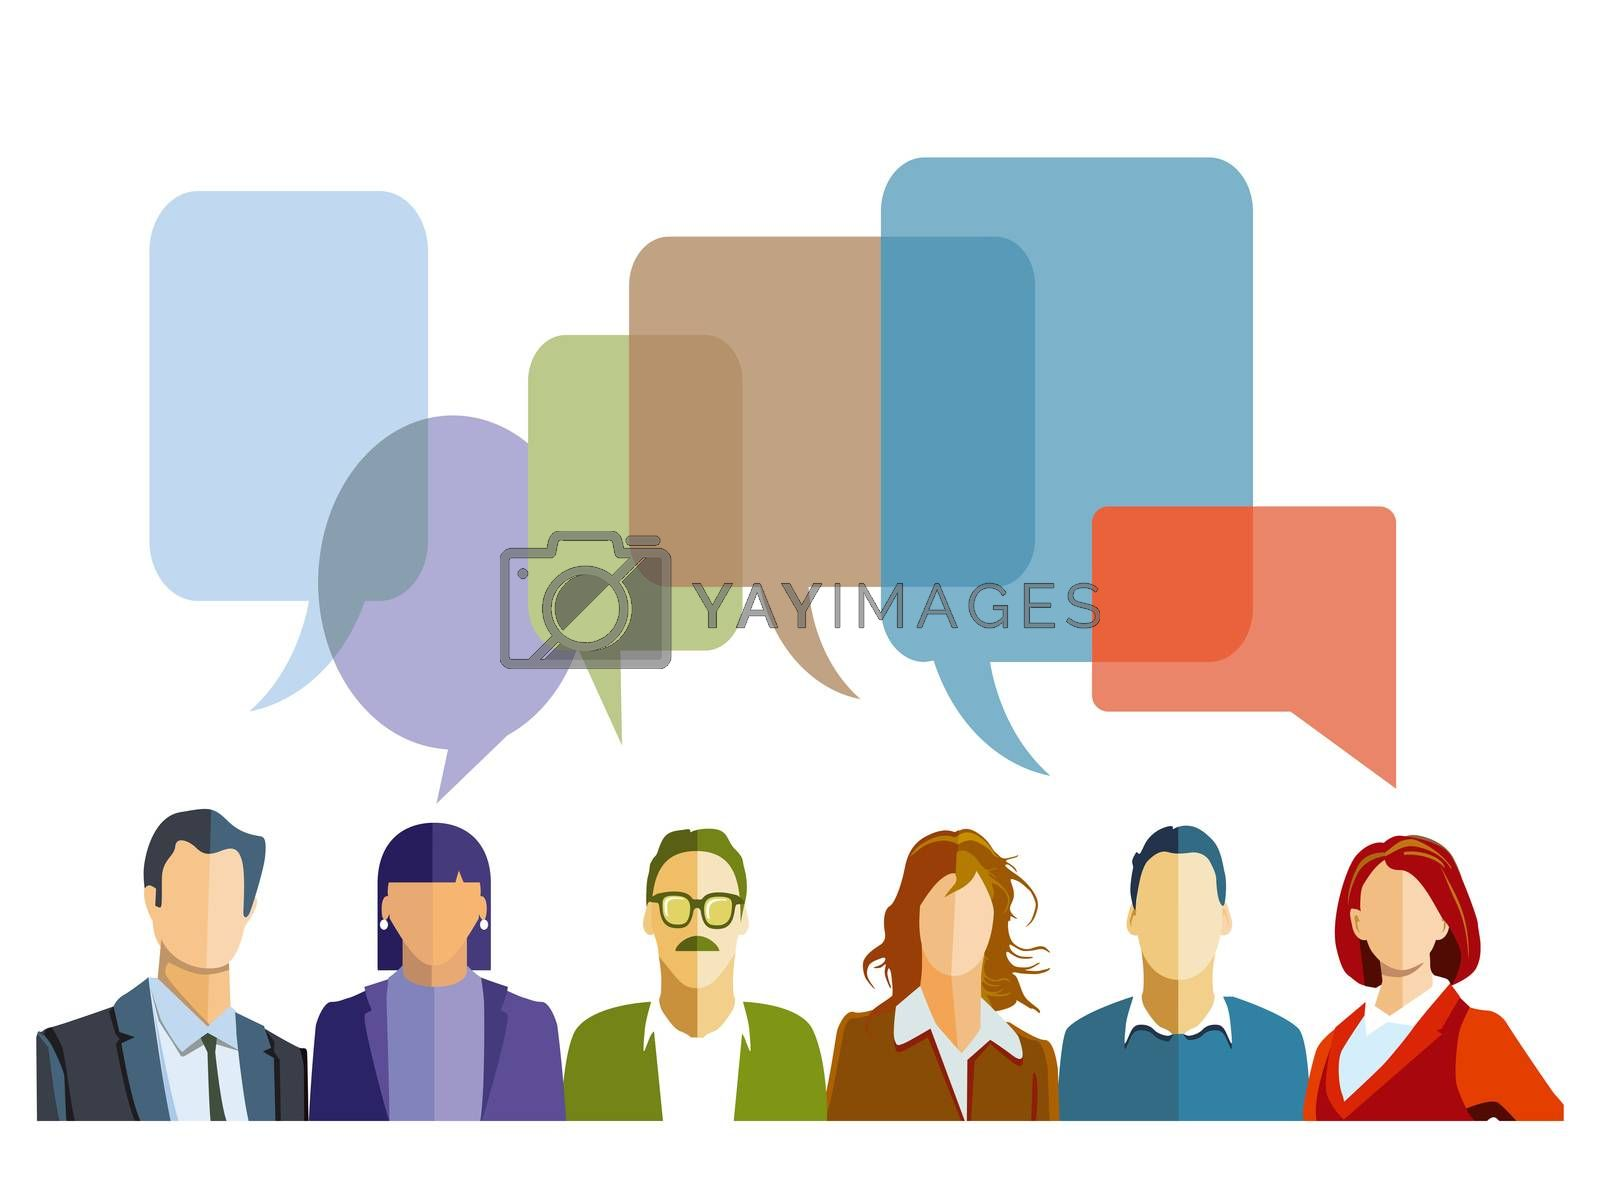 Discussion in the group with speech bubbles